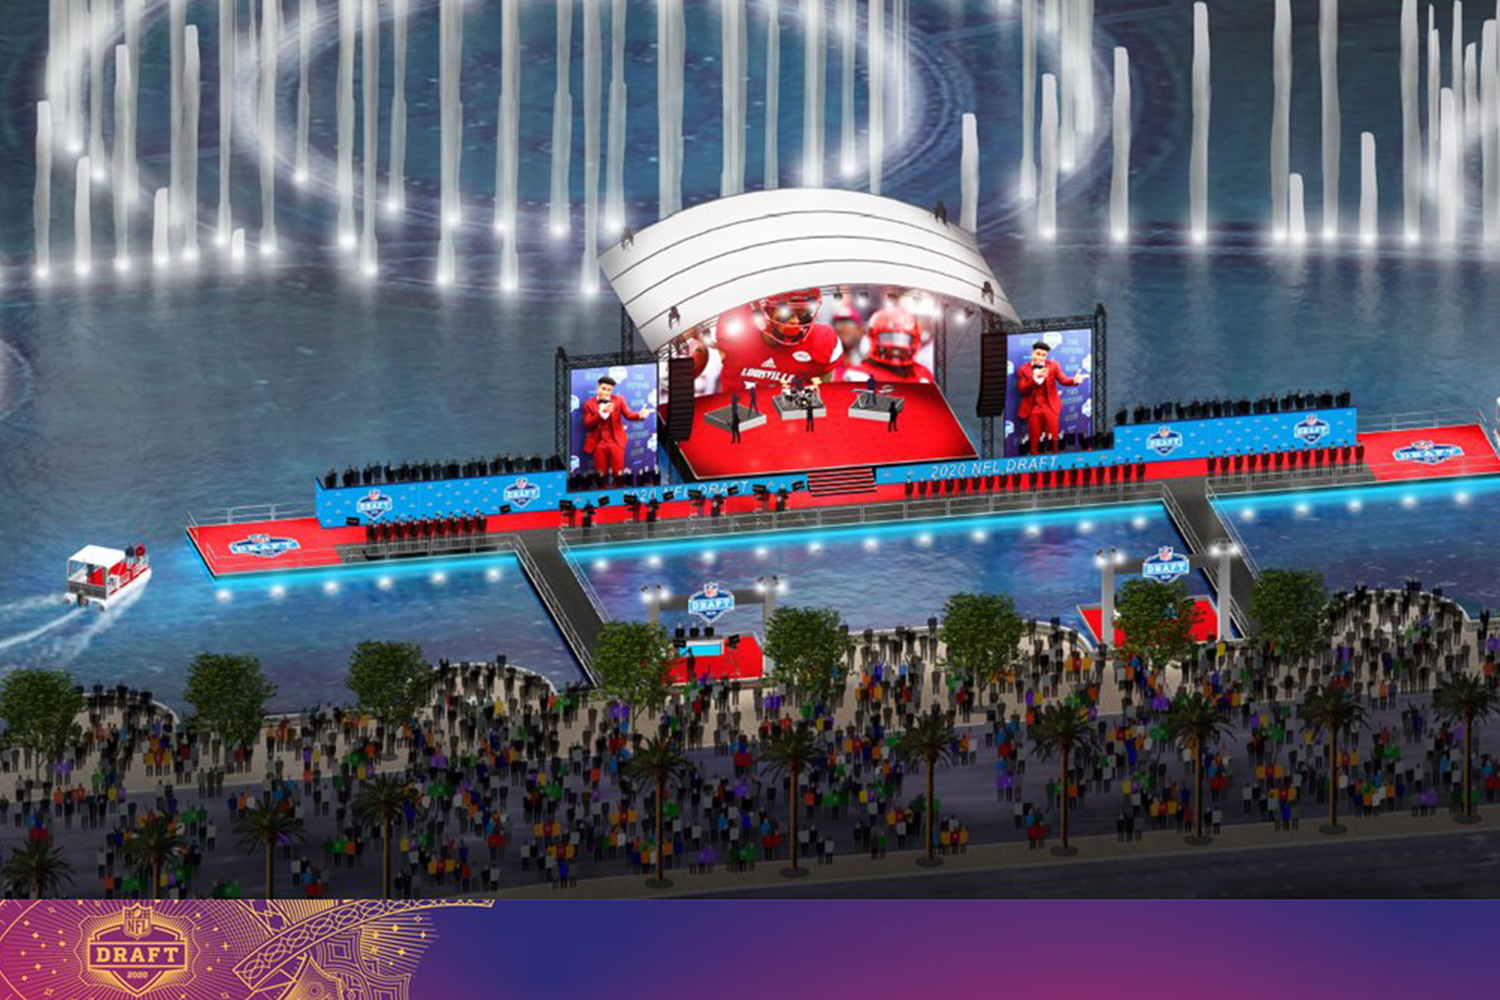 NFL Draft to Feature Floating Stage on Bellagio Fountain